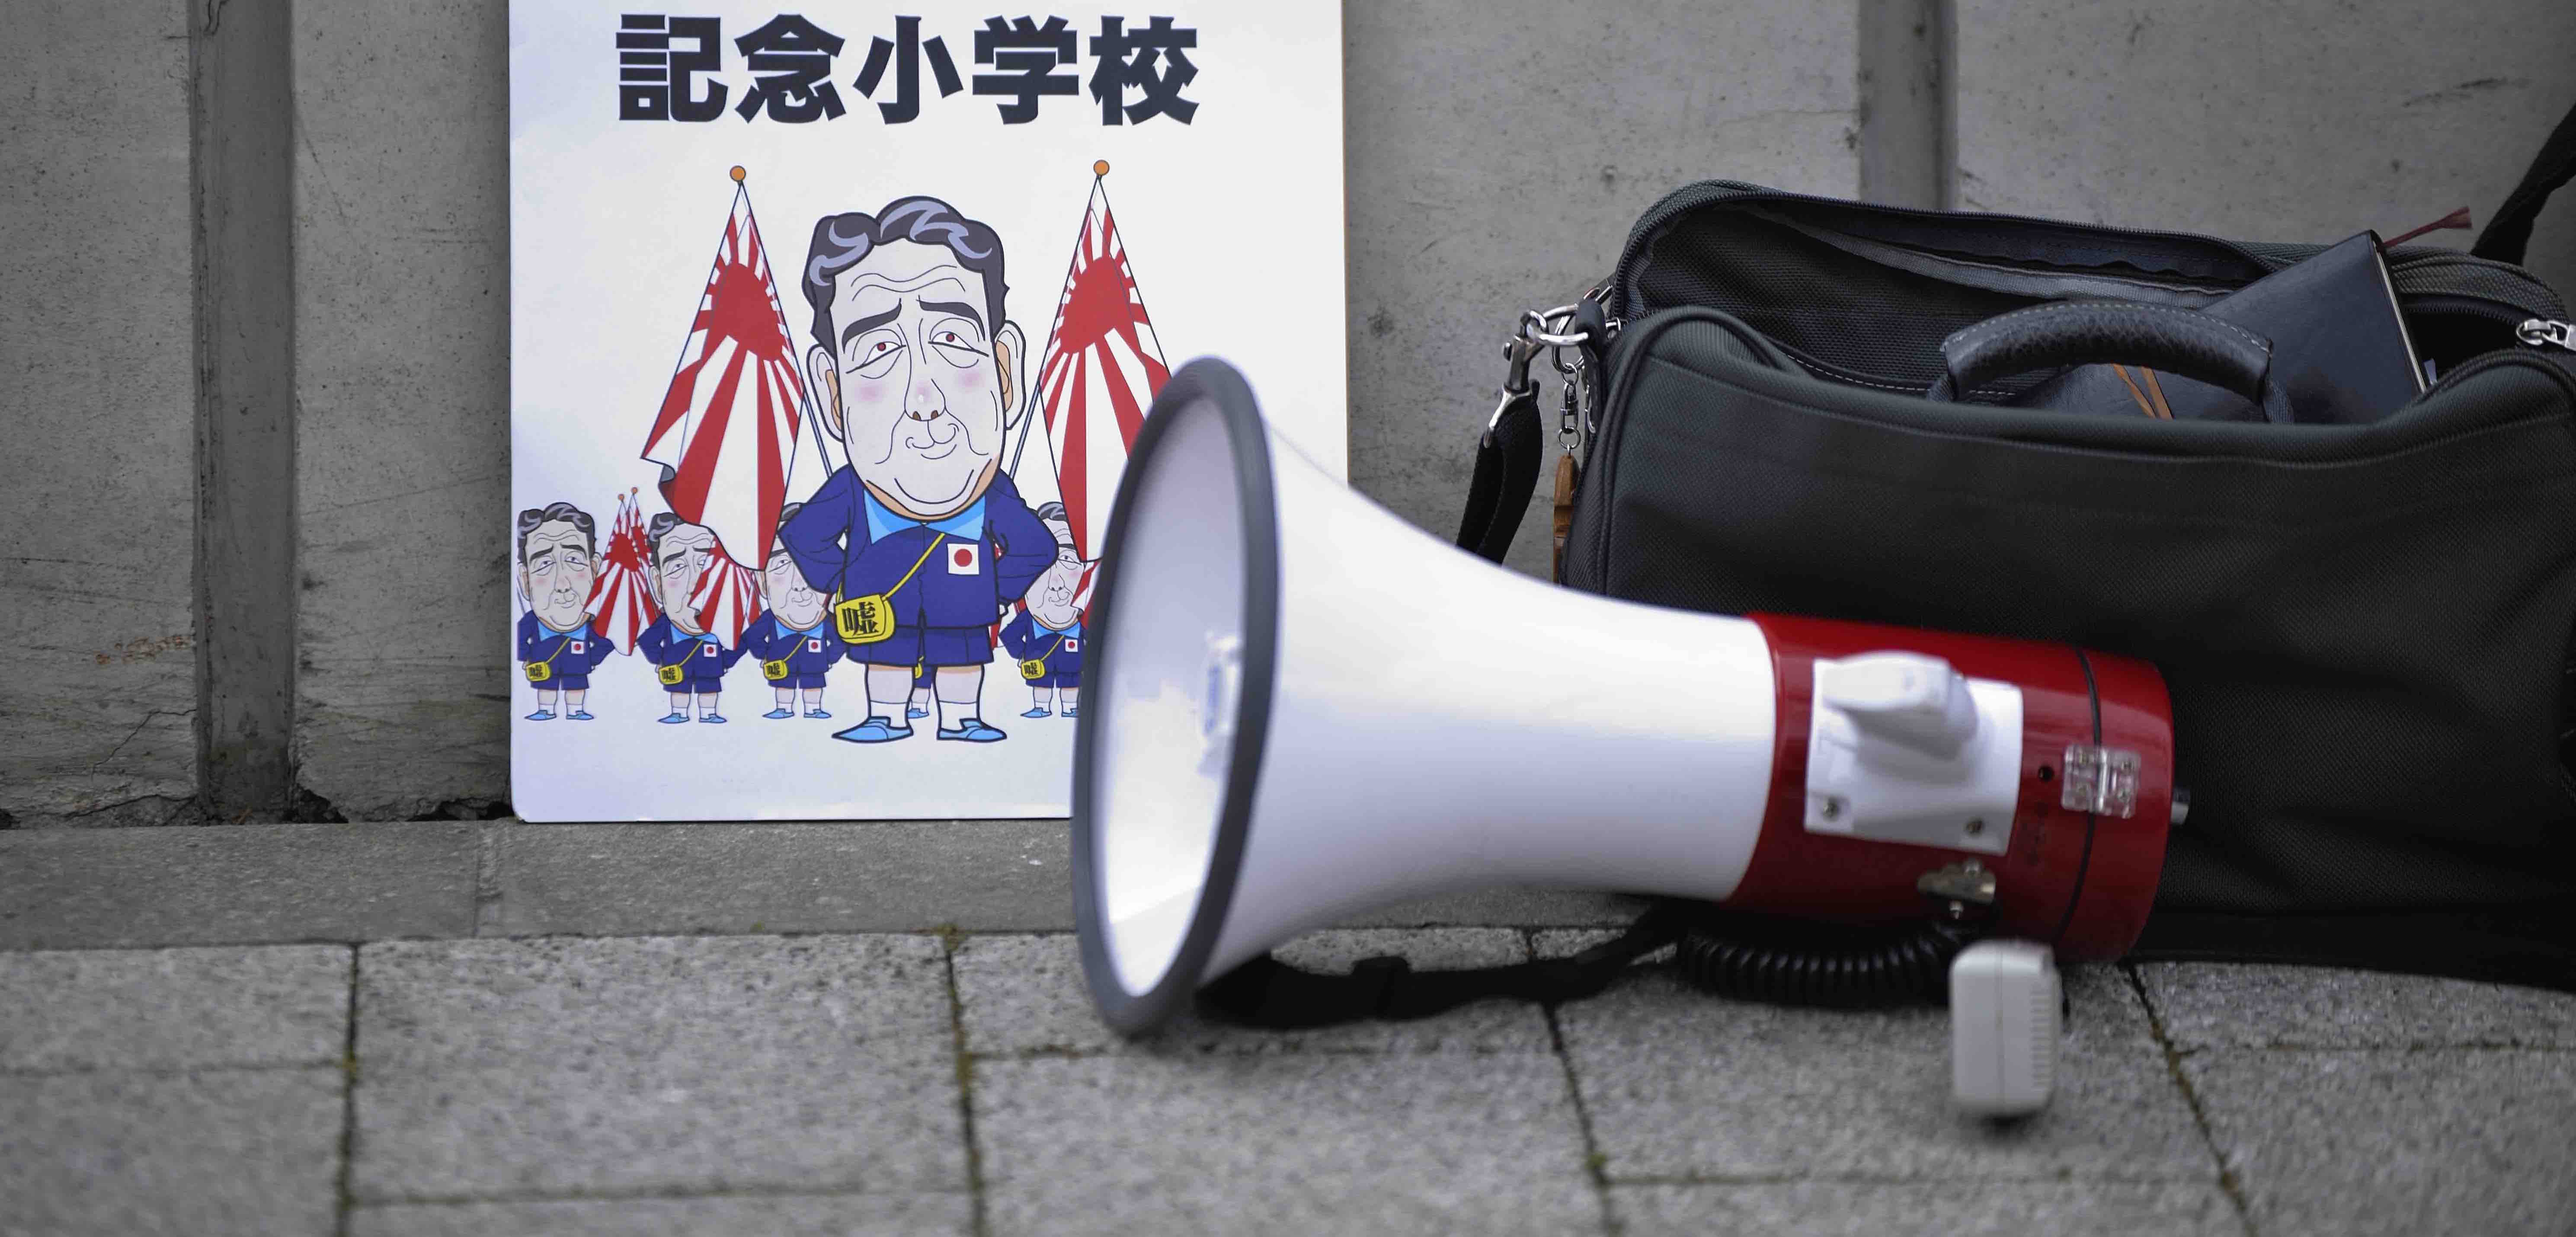 Protest placard against Japanese Prime Minister Shinzo Abe outside the Diet in March 2017 (Photo: David Mareuil/Getty)